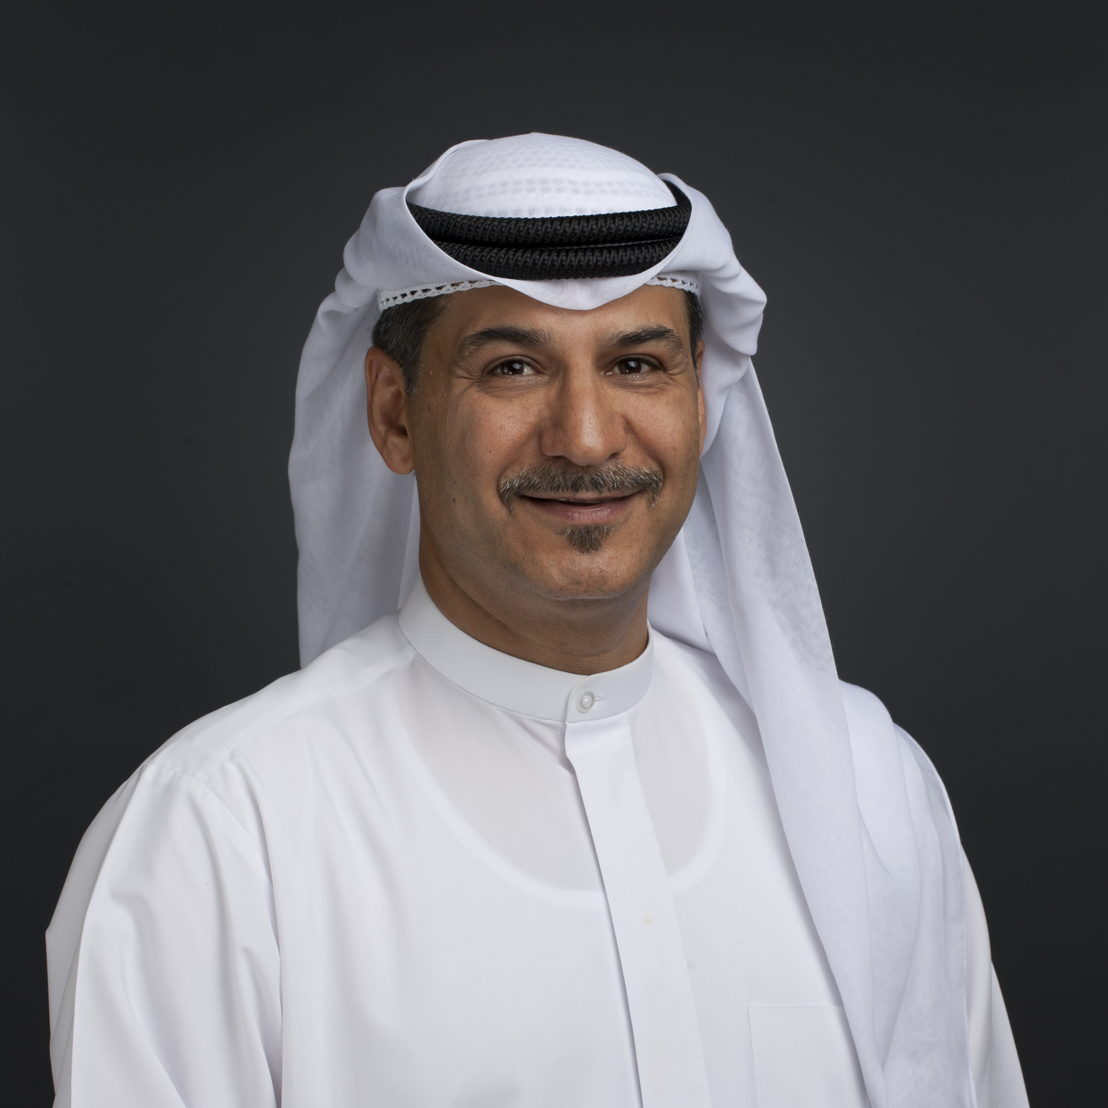 Adel Al Redha, Emirates' Executive Vice President and Chief Operations Officer was ranked in the top 5 global airline executives in the Future Travel Experience Airline Passenger Experience Power List 2017.